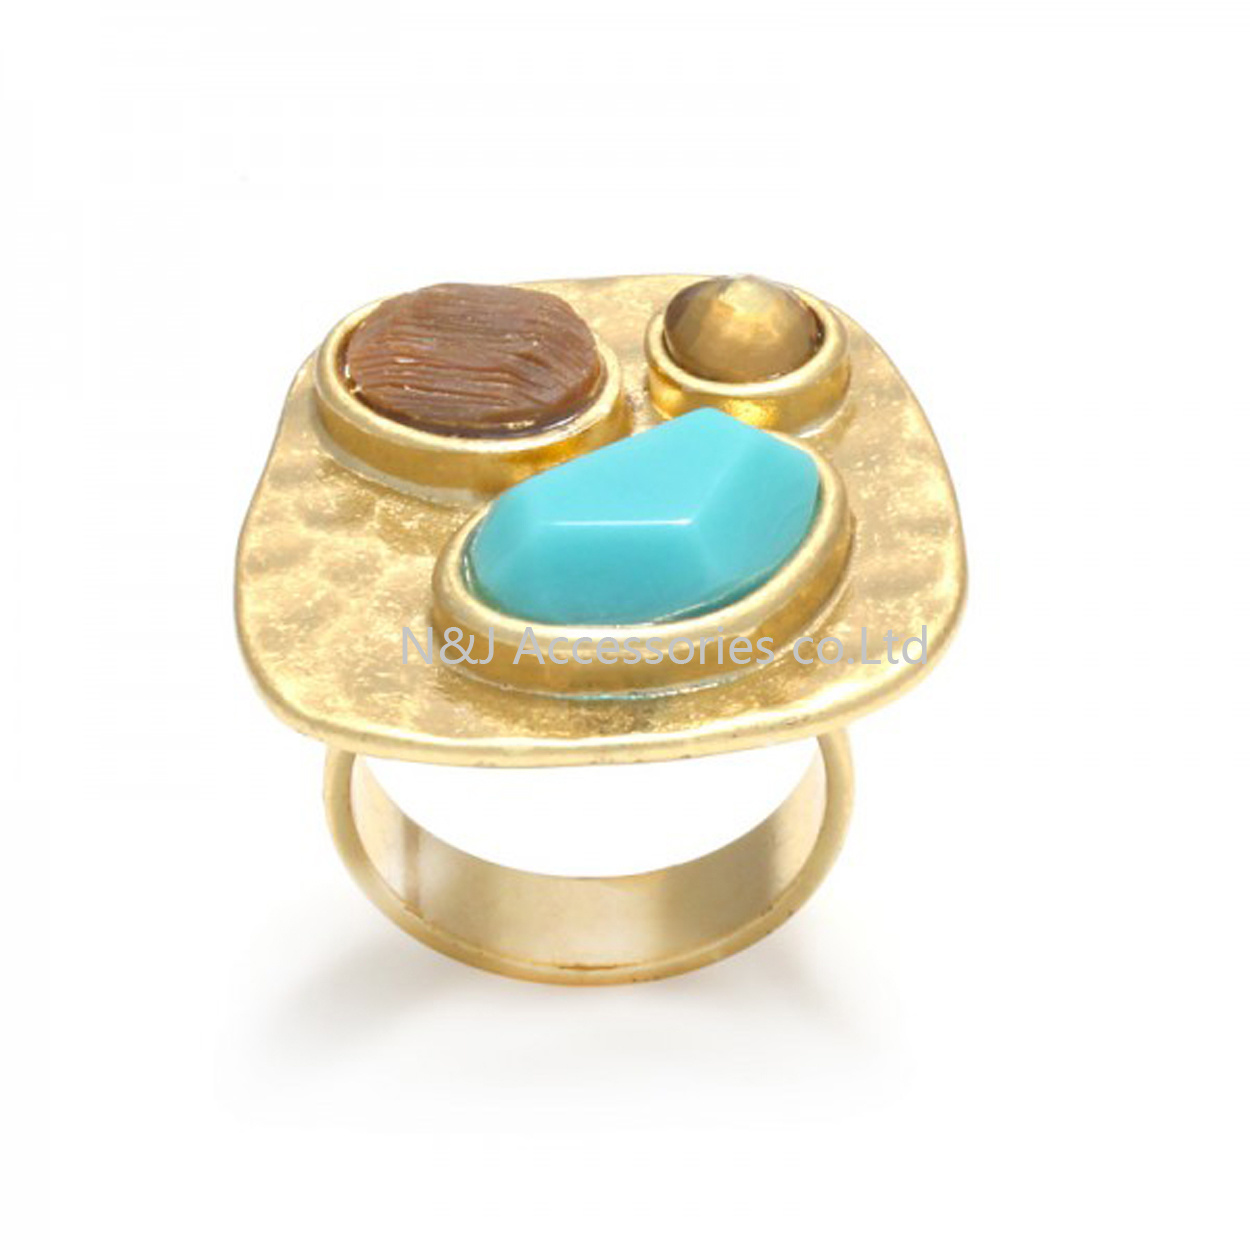 Wholesale Natural Stone Alloy Fashion Jewelry Ring Retro Gold Plated Lady′s Rings